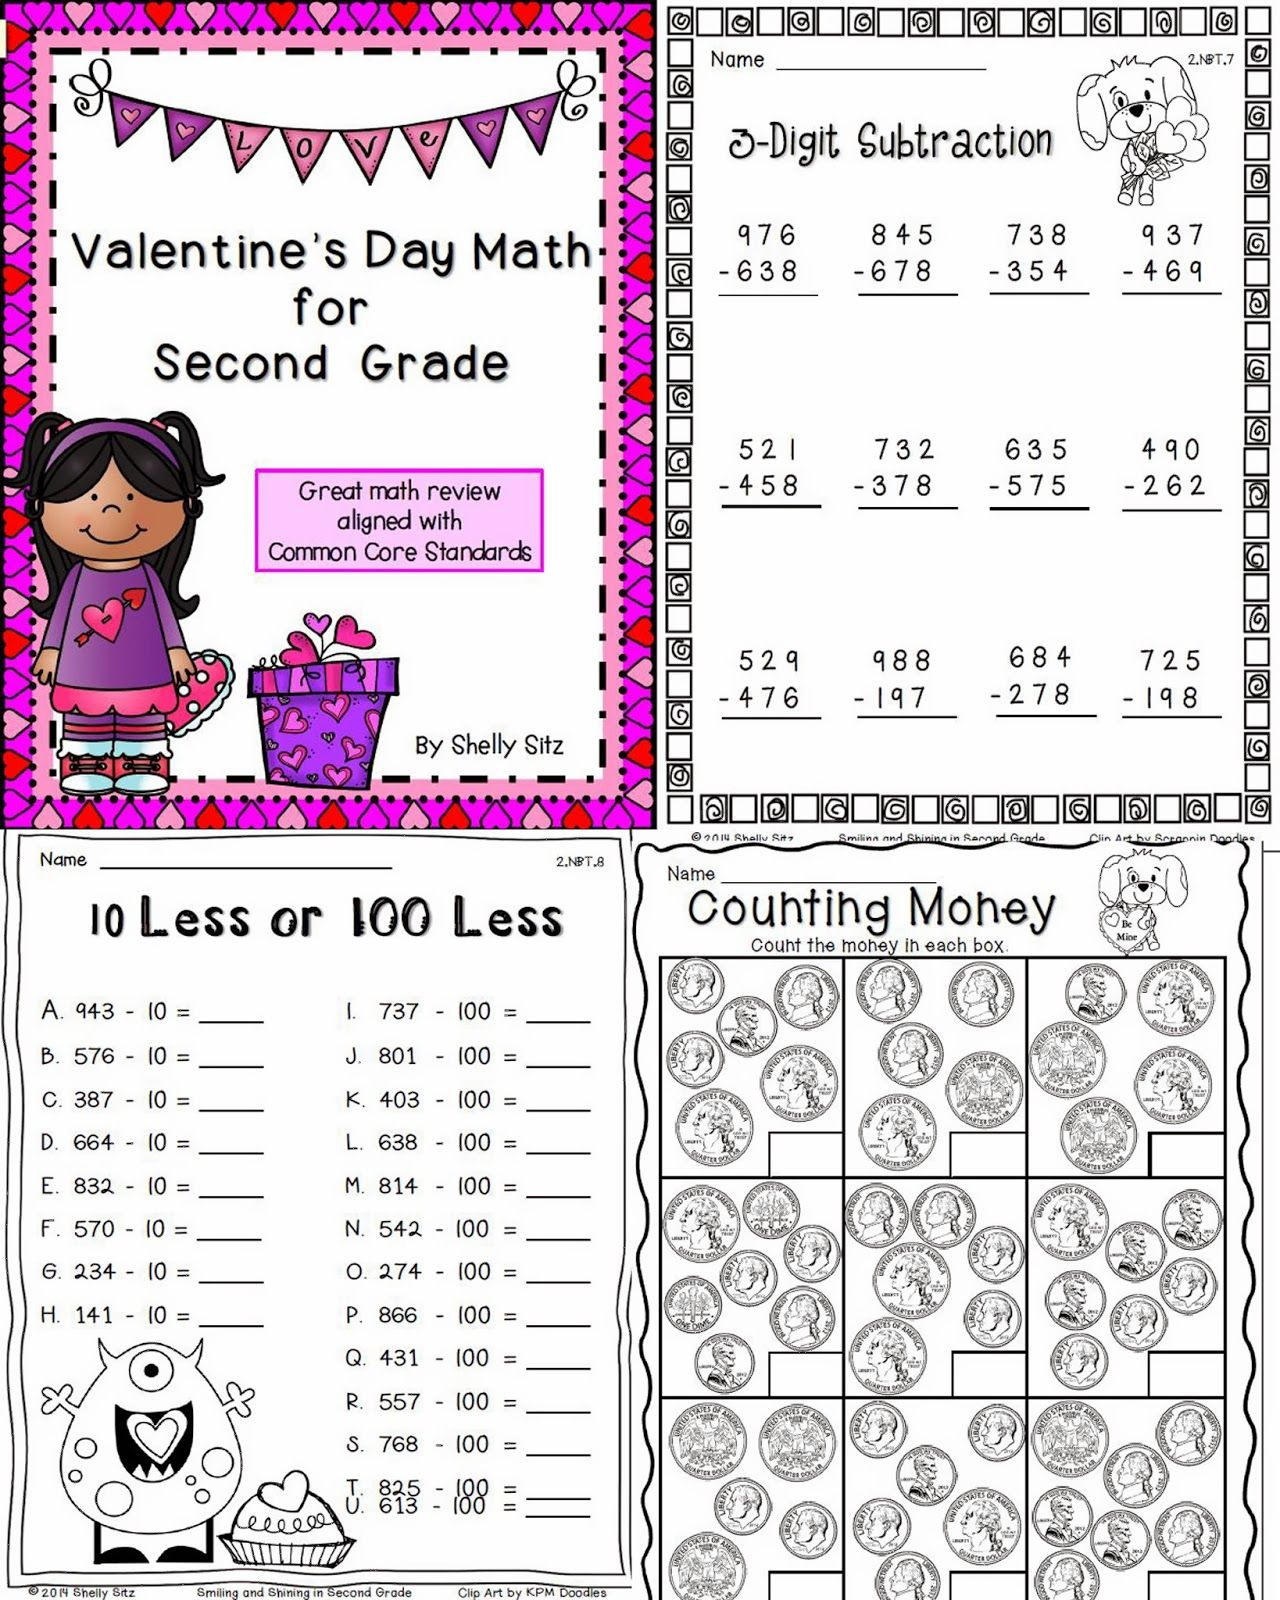 Valentine\'s Day Math for Second Grade | Die besten Ideen zu Mathe ...